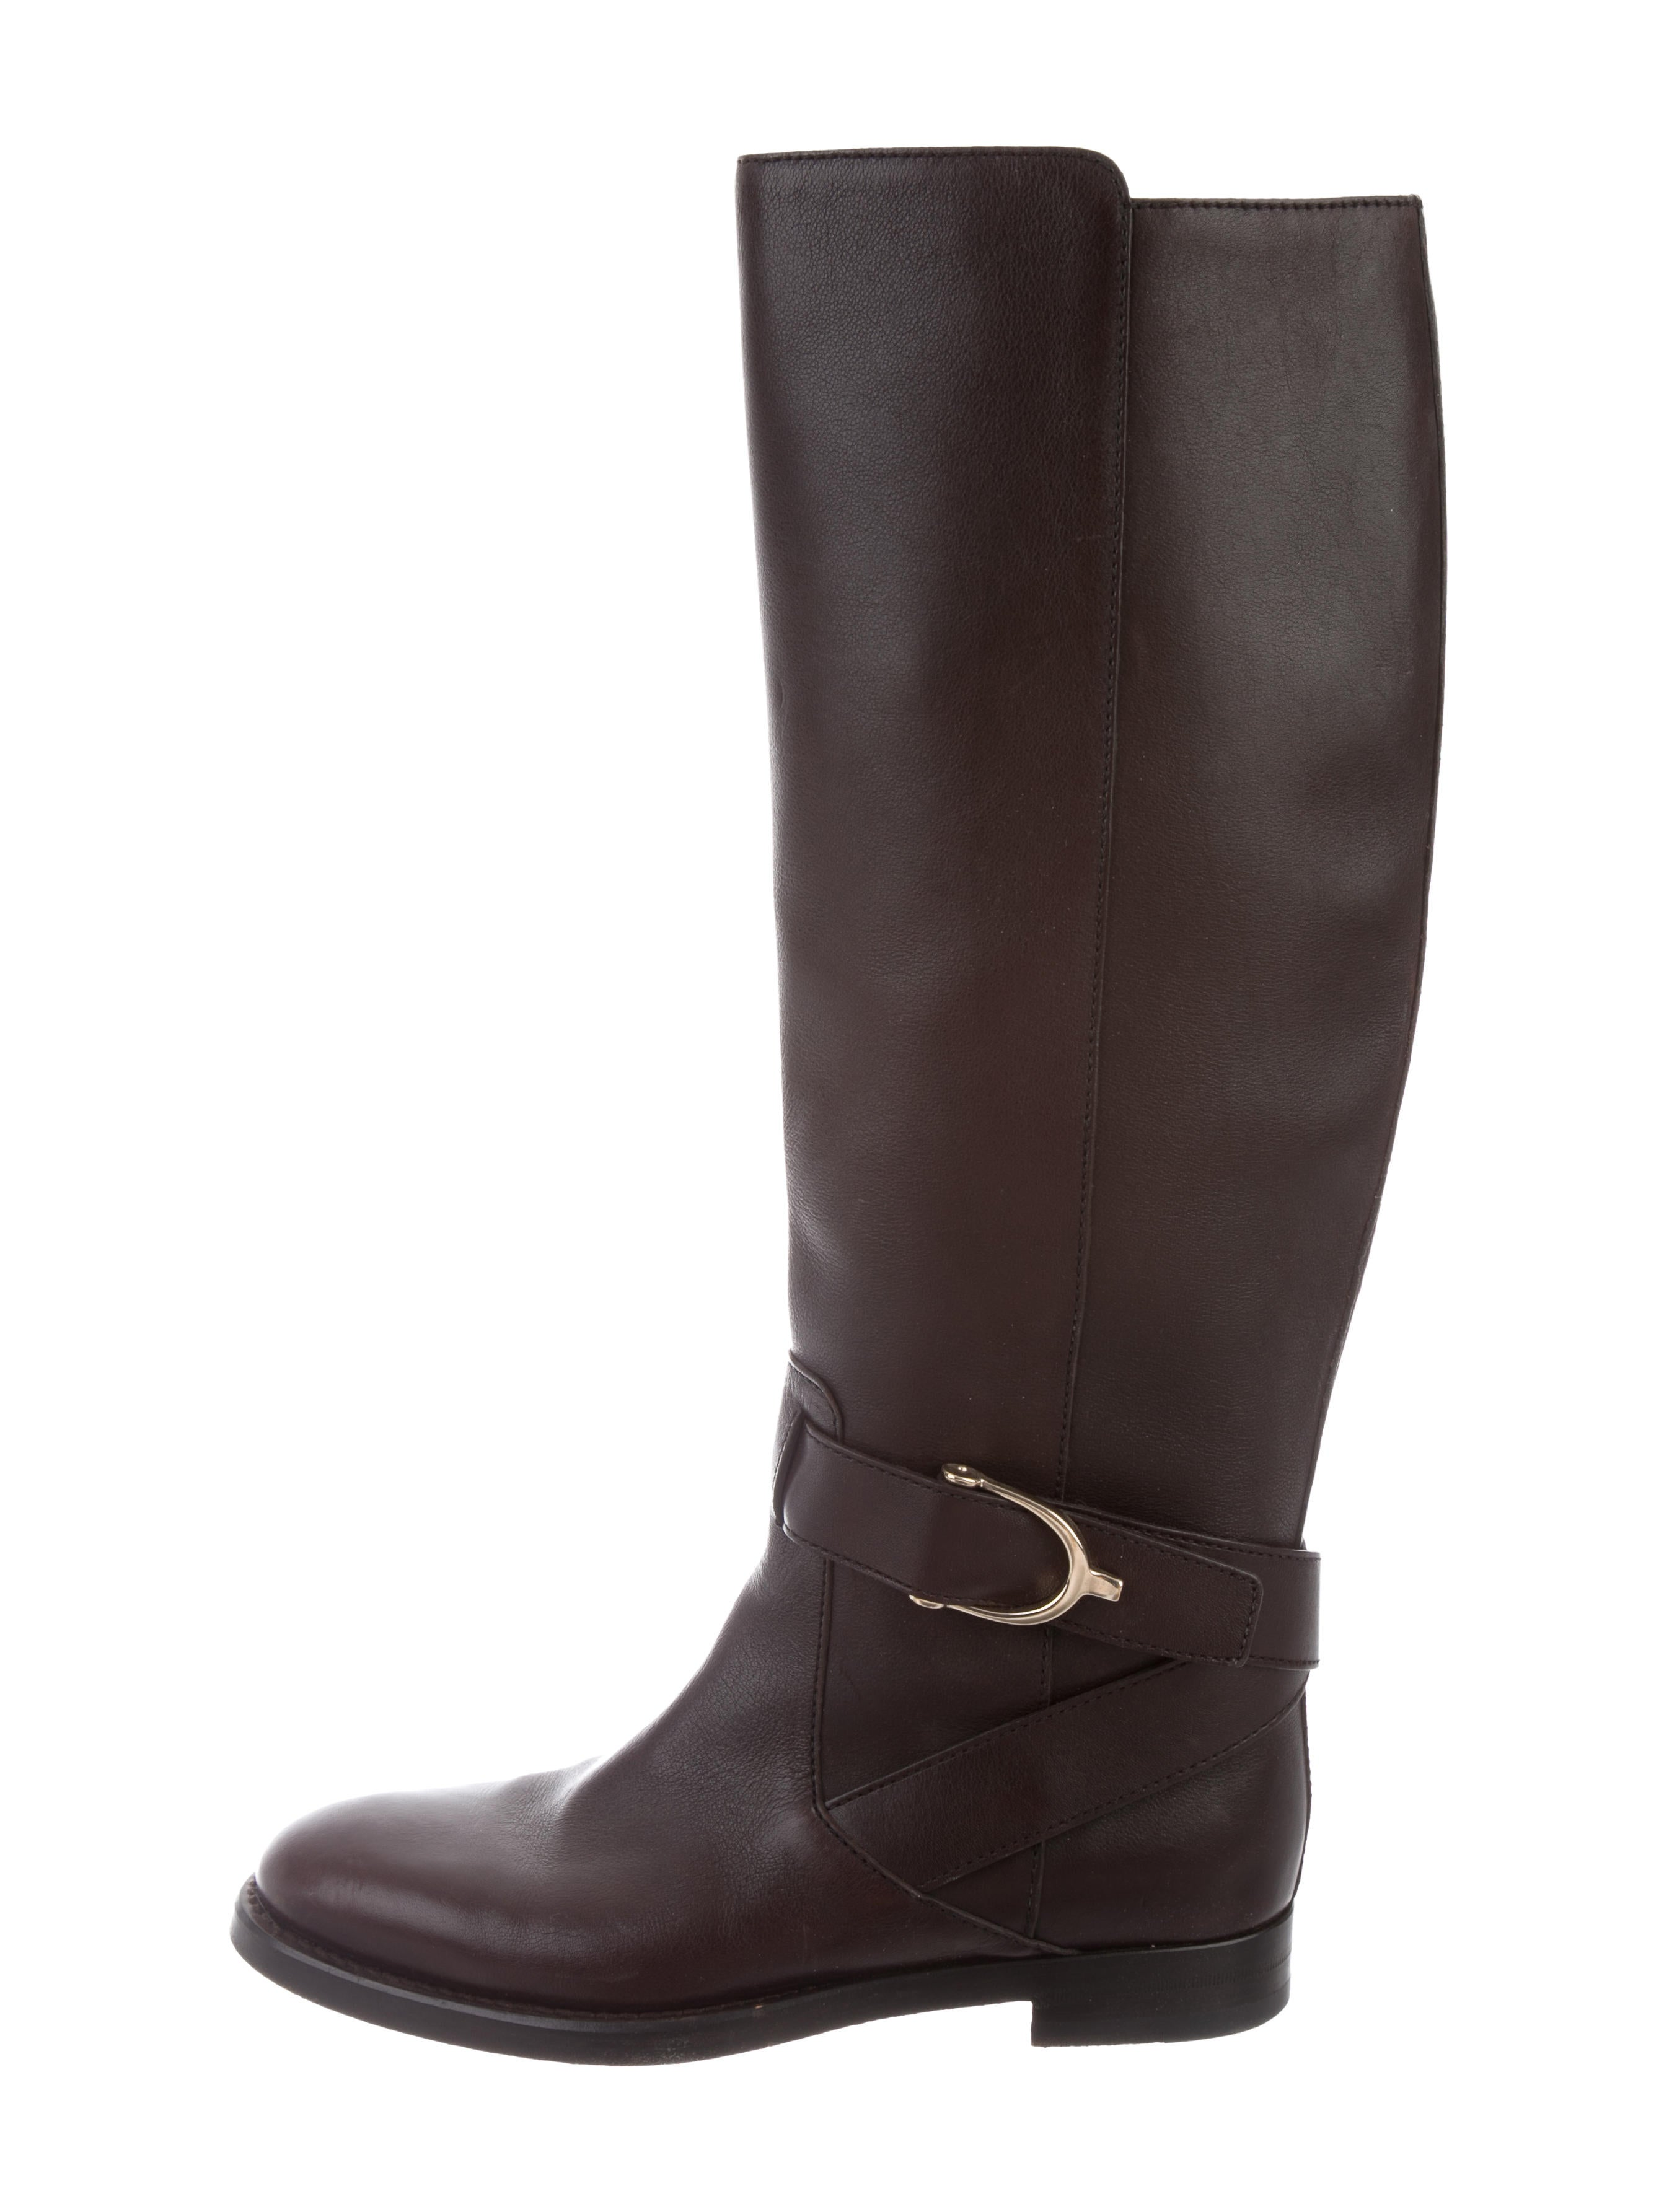 f01f59e6a Gucci Leather Round-Toe Boots - Shoes - GUC215037 | The RealReal